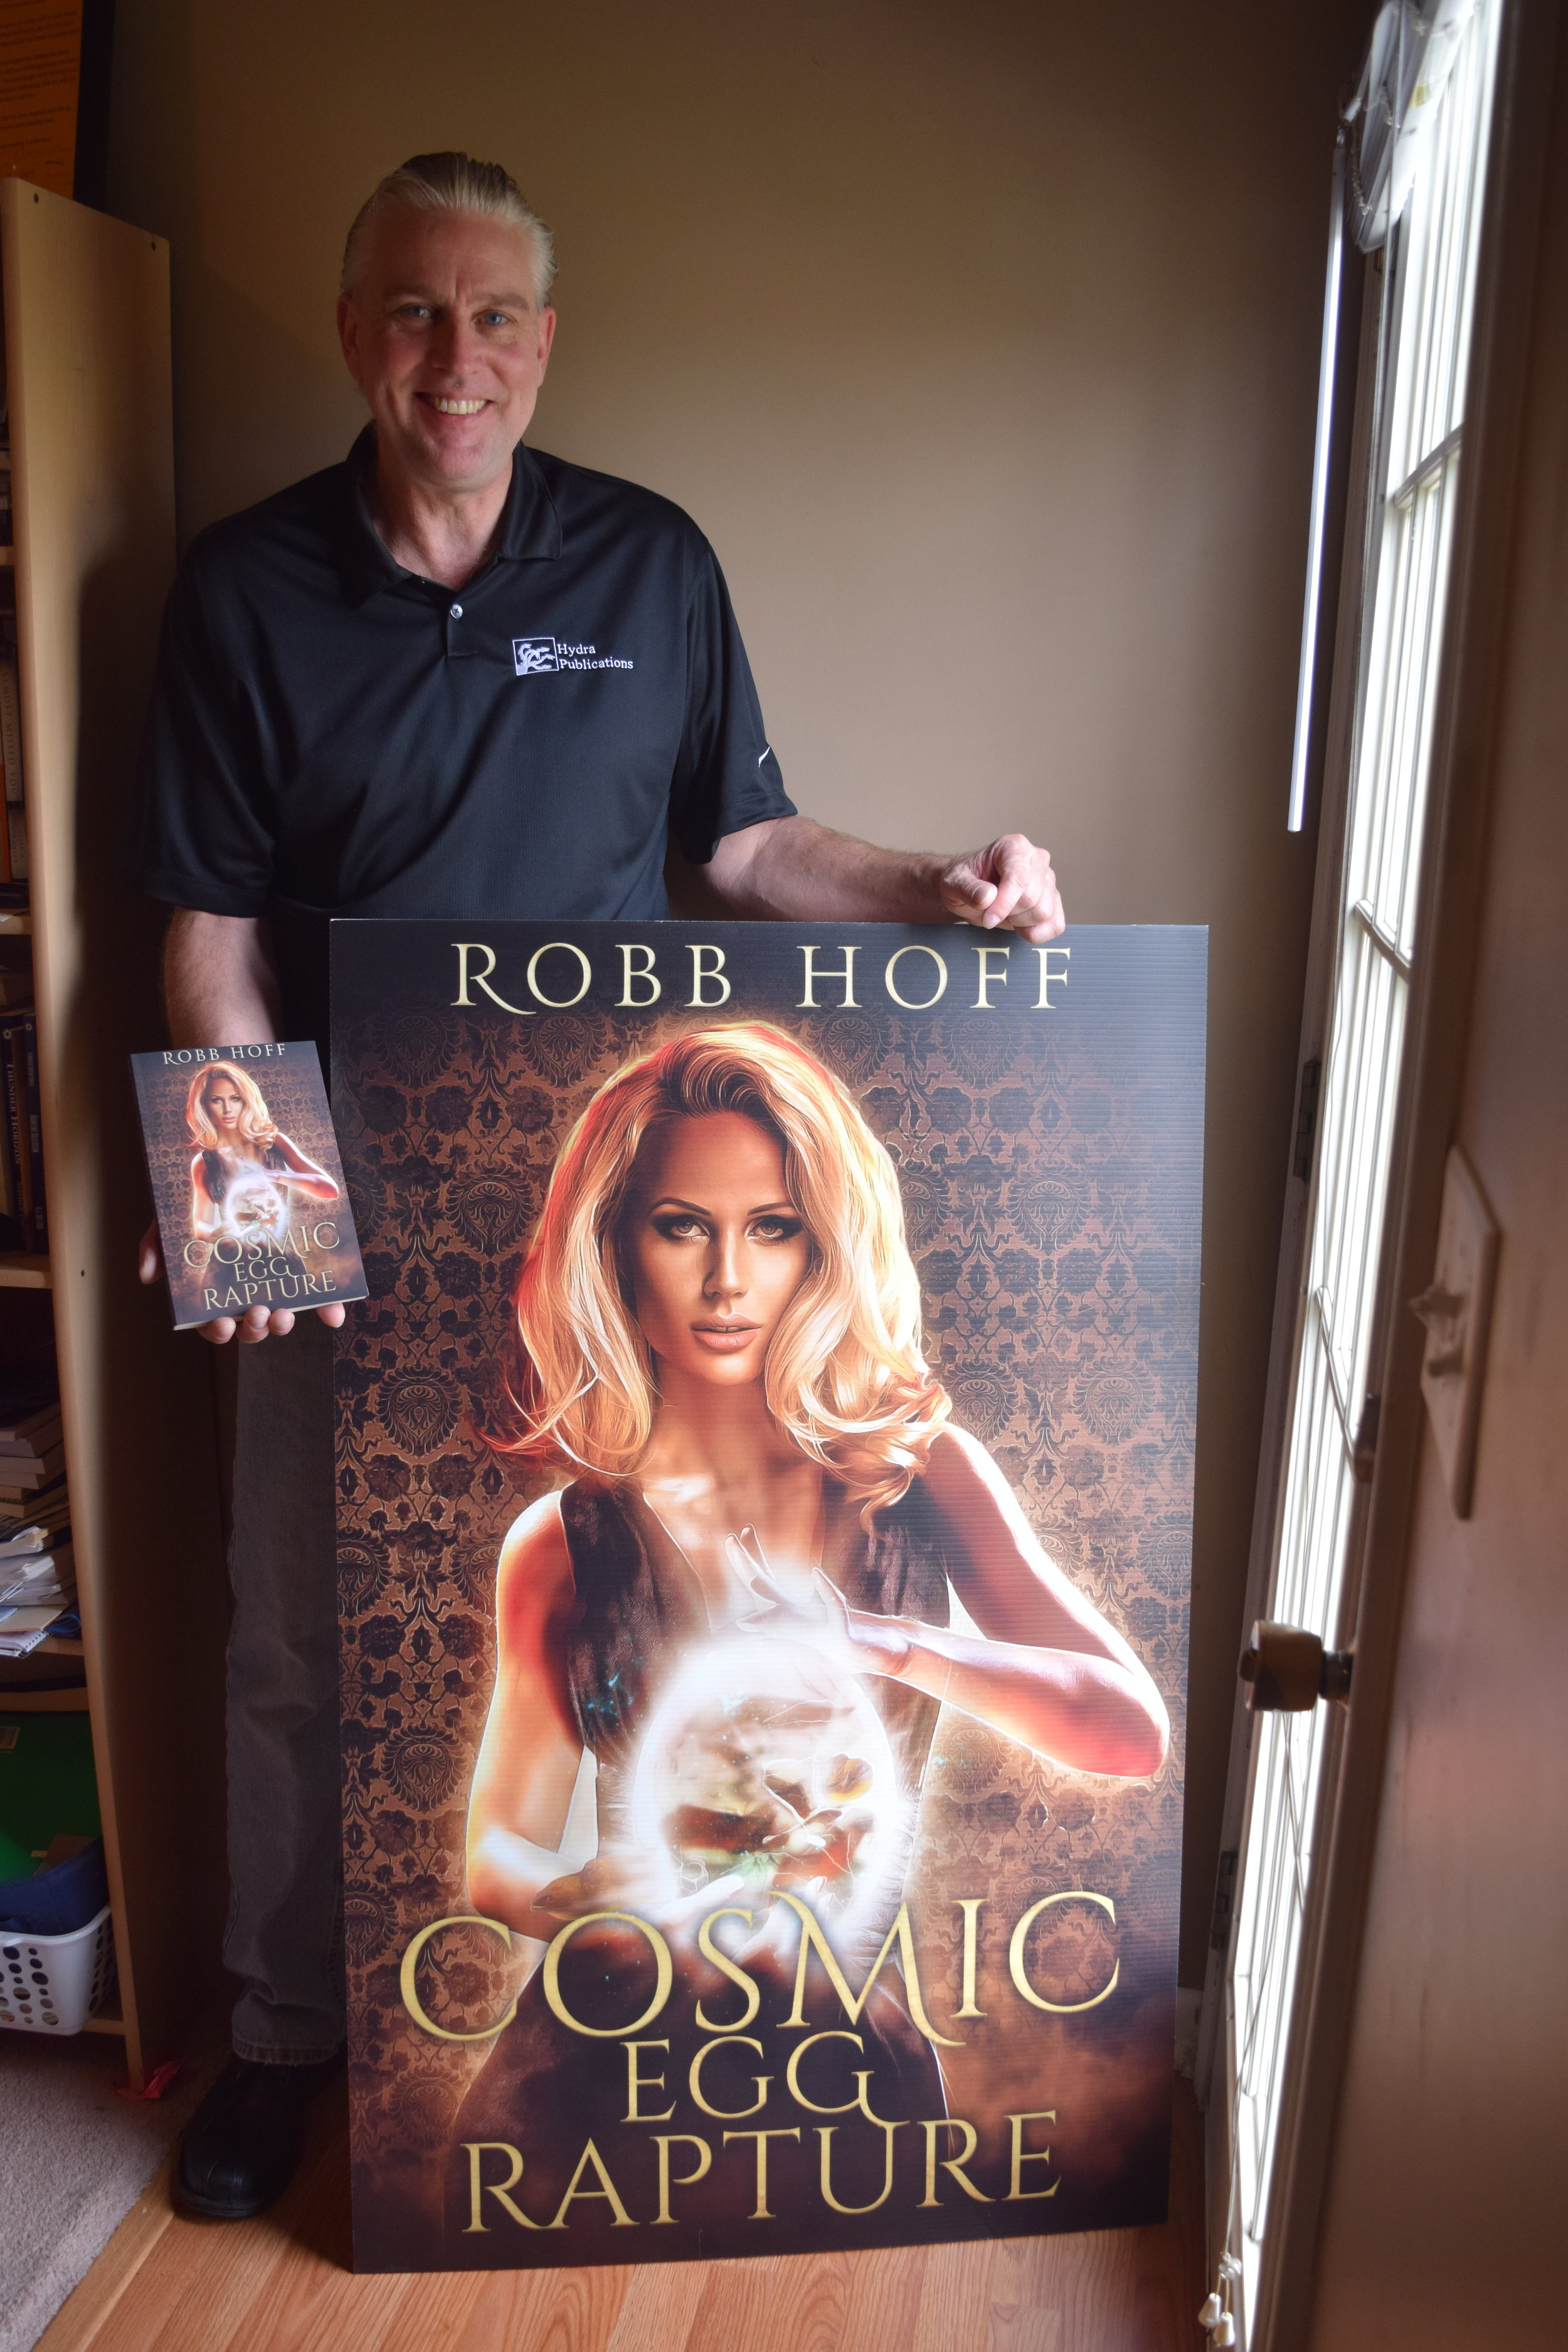 - Book signing season is about to burst in full bloom! The lovely and talented Sirena will be joining me Saturday March 31 at the Louisville Hyatt Regency for the Books in Bourbon Country Author Signing Event. Can't make it? No worries. Click image to order my Cosmic Egg Rapture novel, print or Kindle edition. (Yes, that's Sirena on the cover with her Cosmic Egg!)